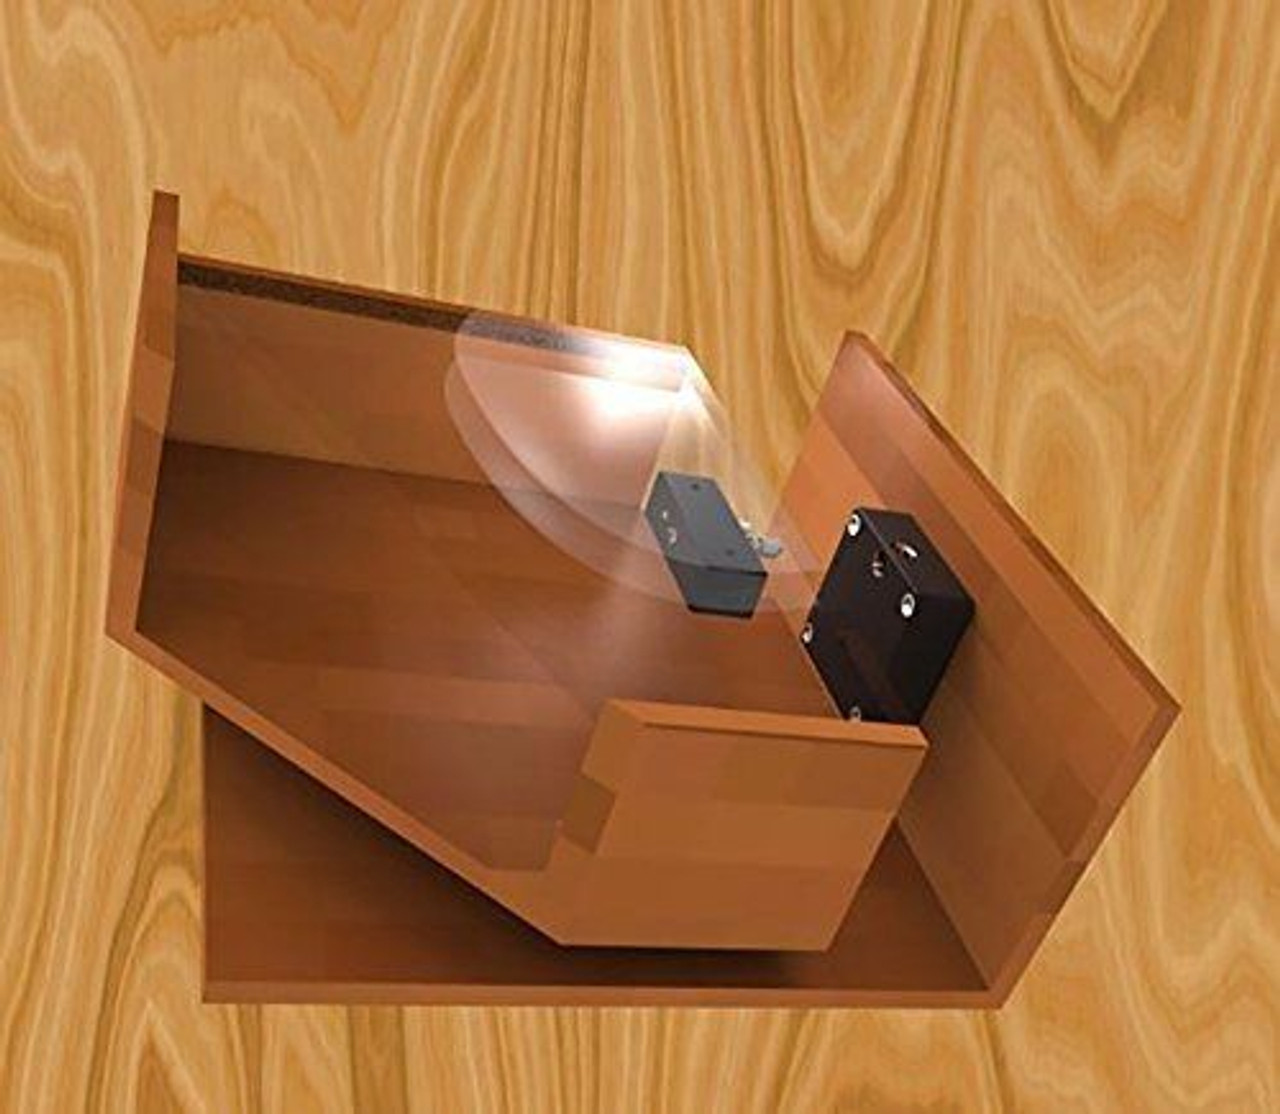 RFID Hidden Cabinet Drawer Lock, 3 Keys - Gun Safes,Stands, cabinets-13.56 Mhz